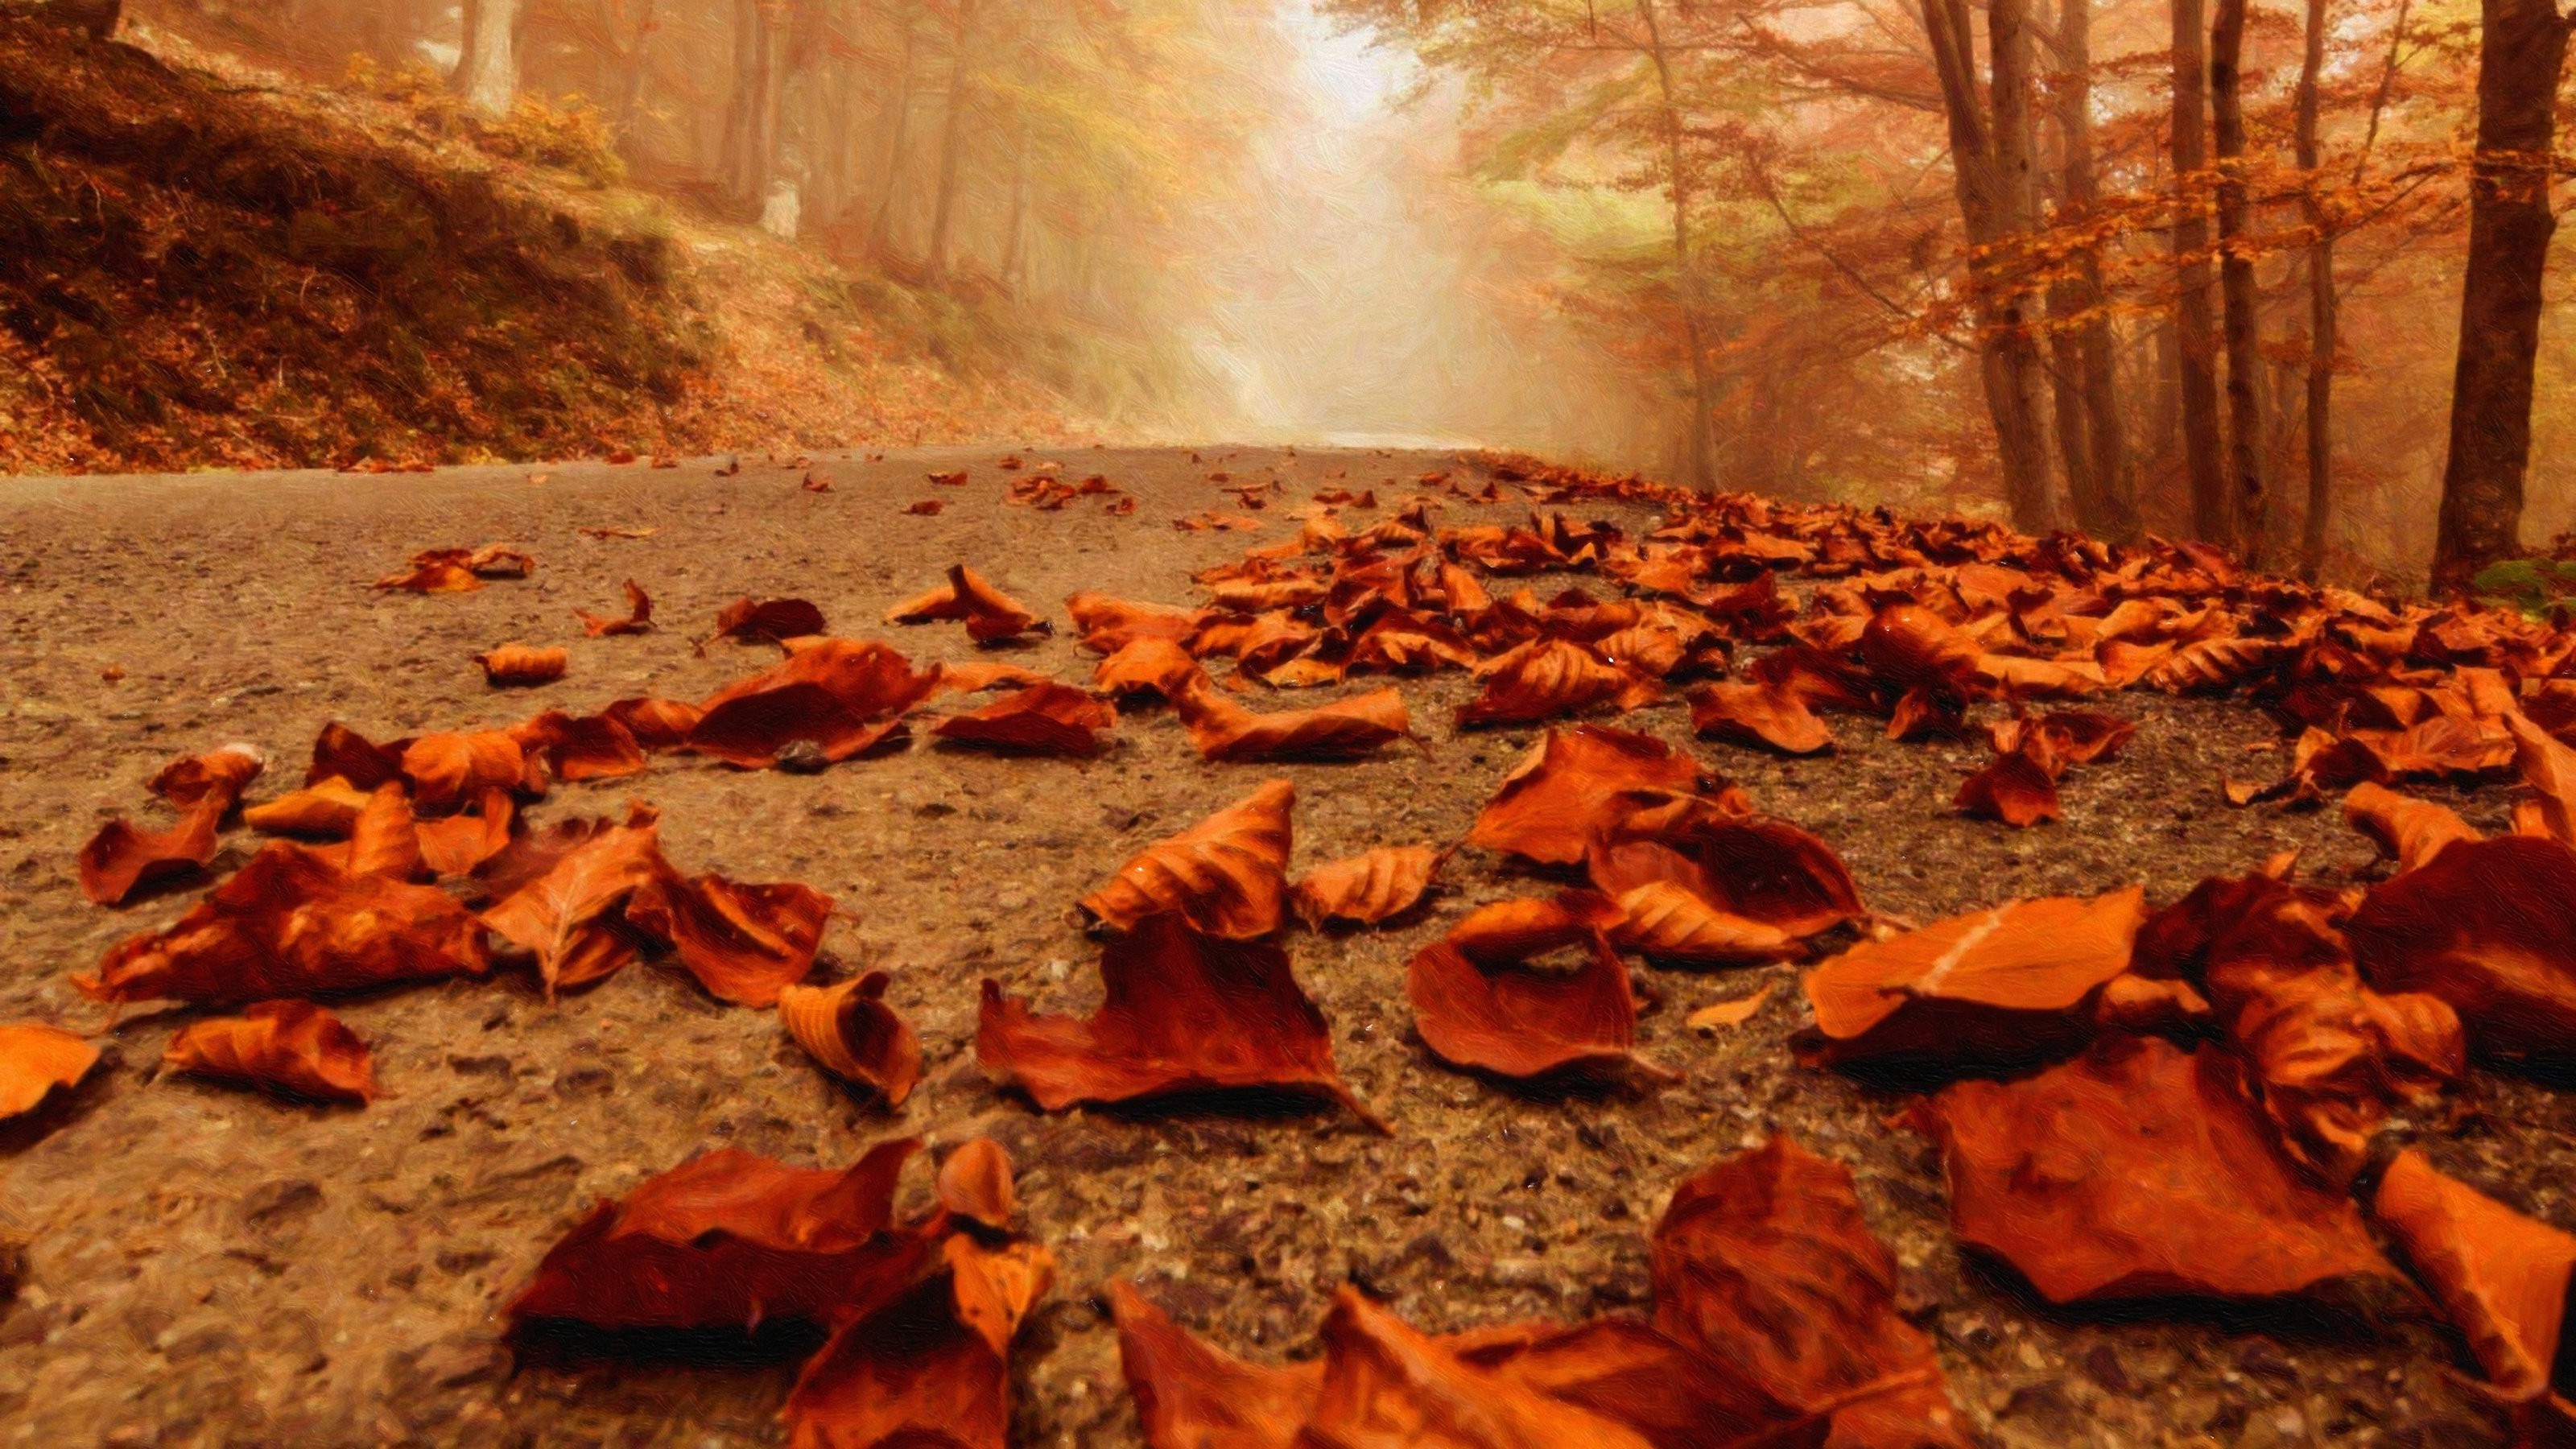 1920x1080 Fall Hd Wallpaper Fall Leaves Path Forest Wallpapers Hd Desktop And